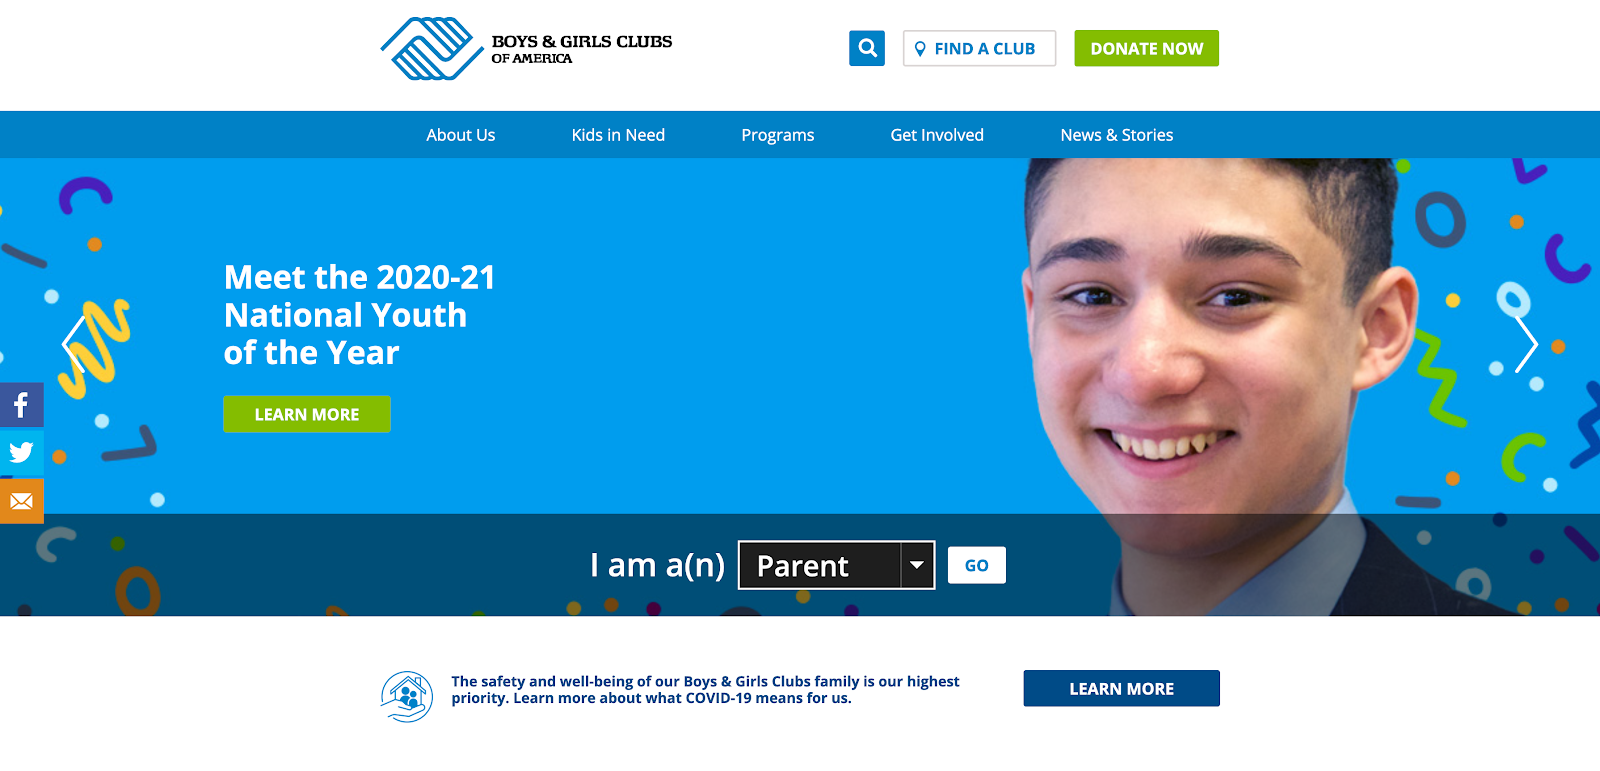 Check out the Boys & Girls Clubs of America for an example of a best nonprofit website.